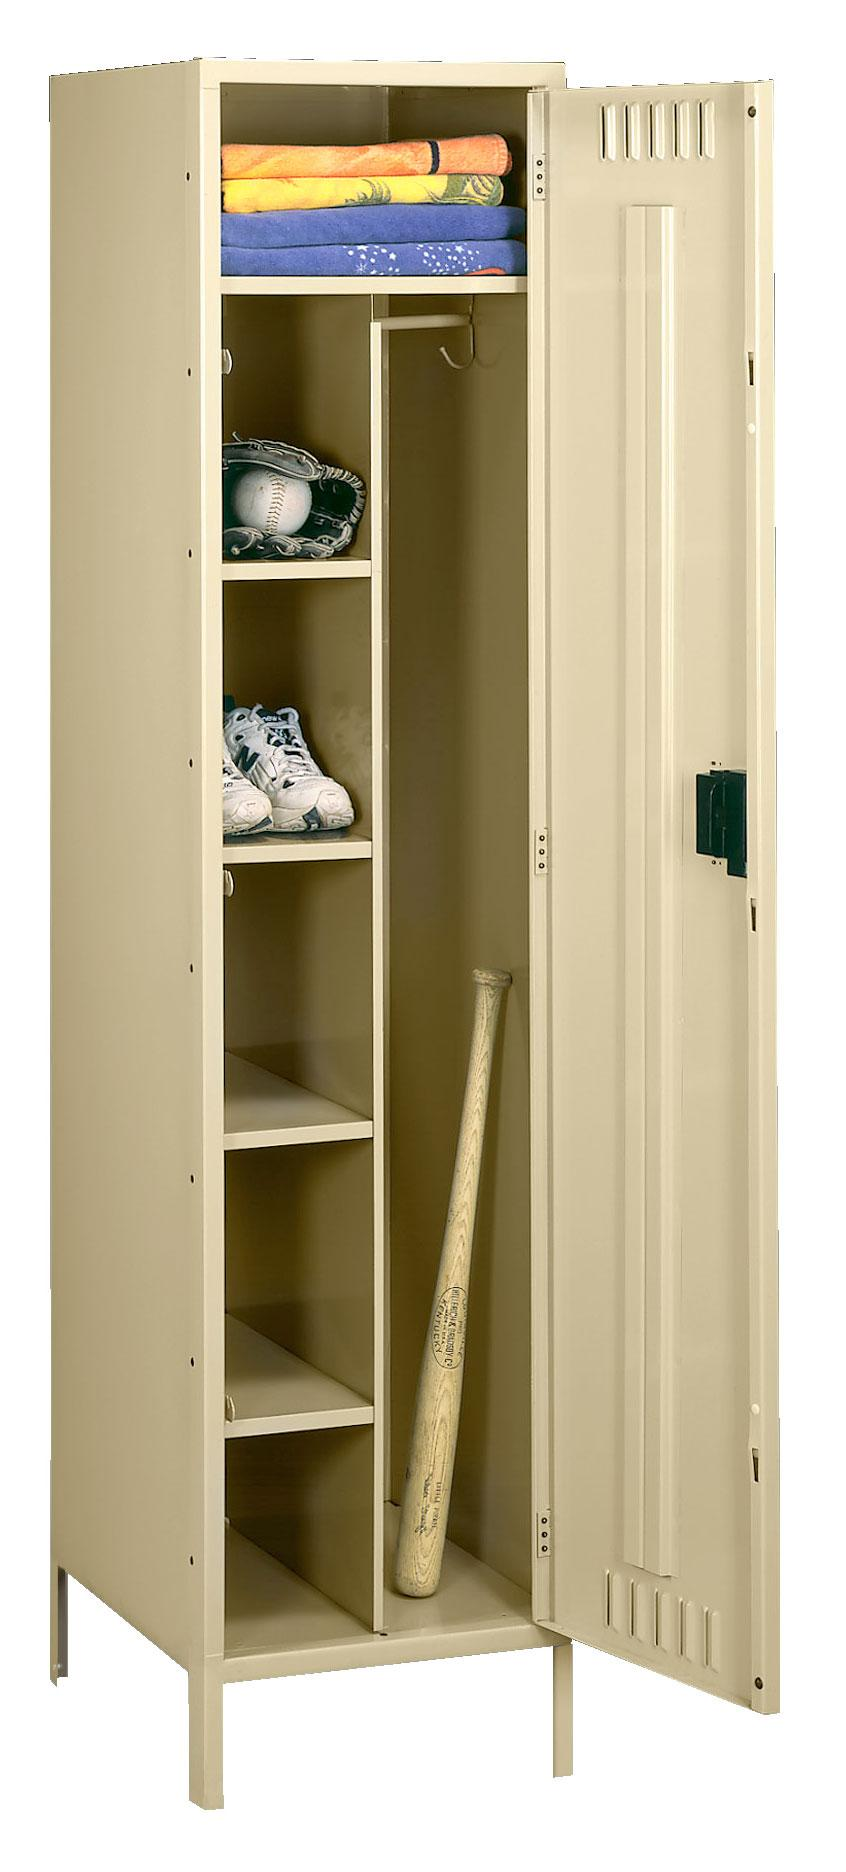 CMS-242172-1 Combination Lockers